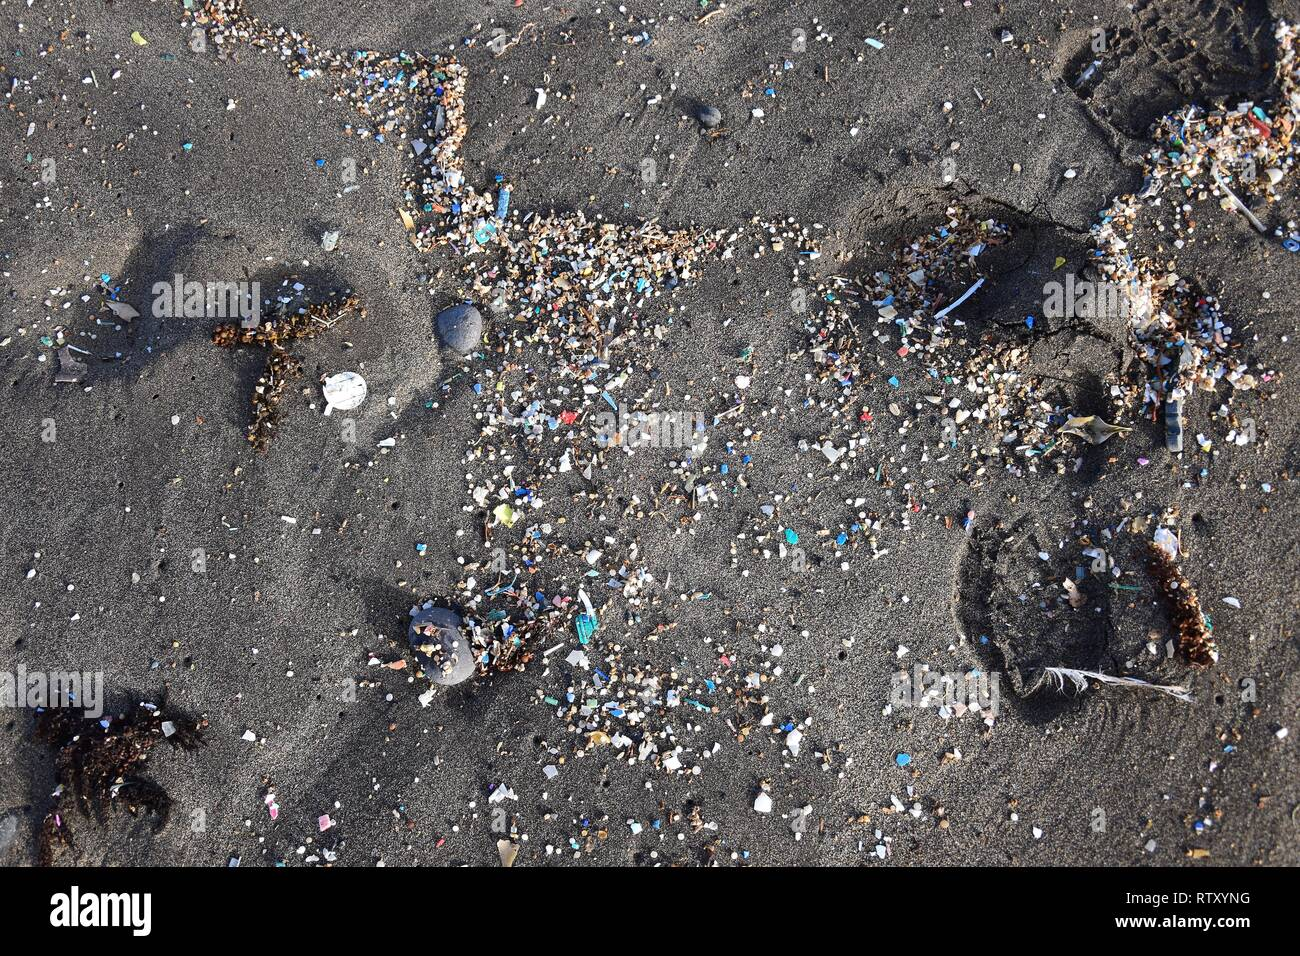 Small plastic parts and microplastics in the sand of Famara beach, Lanzarote, Spain. - Stock Image